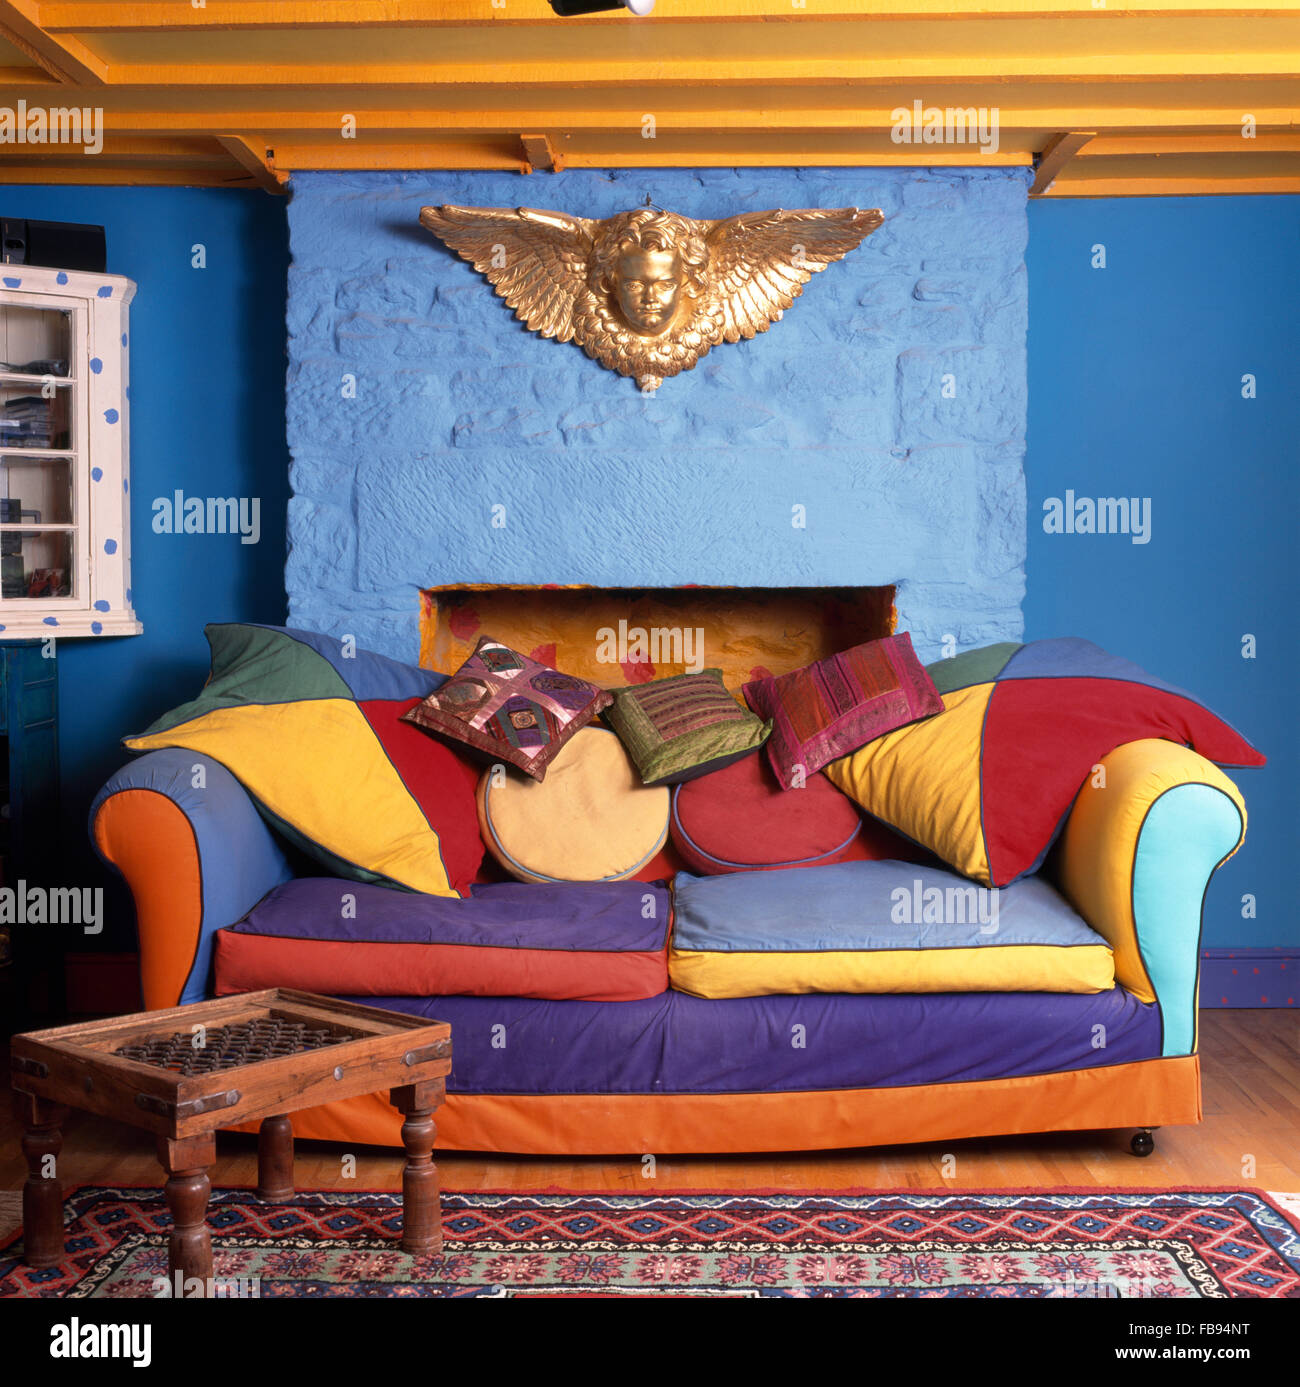 Gold Cherub Above A Vibrant, Multi Colored Sofa In A Bright Blue Nineties  Cottage Living Room